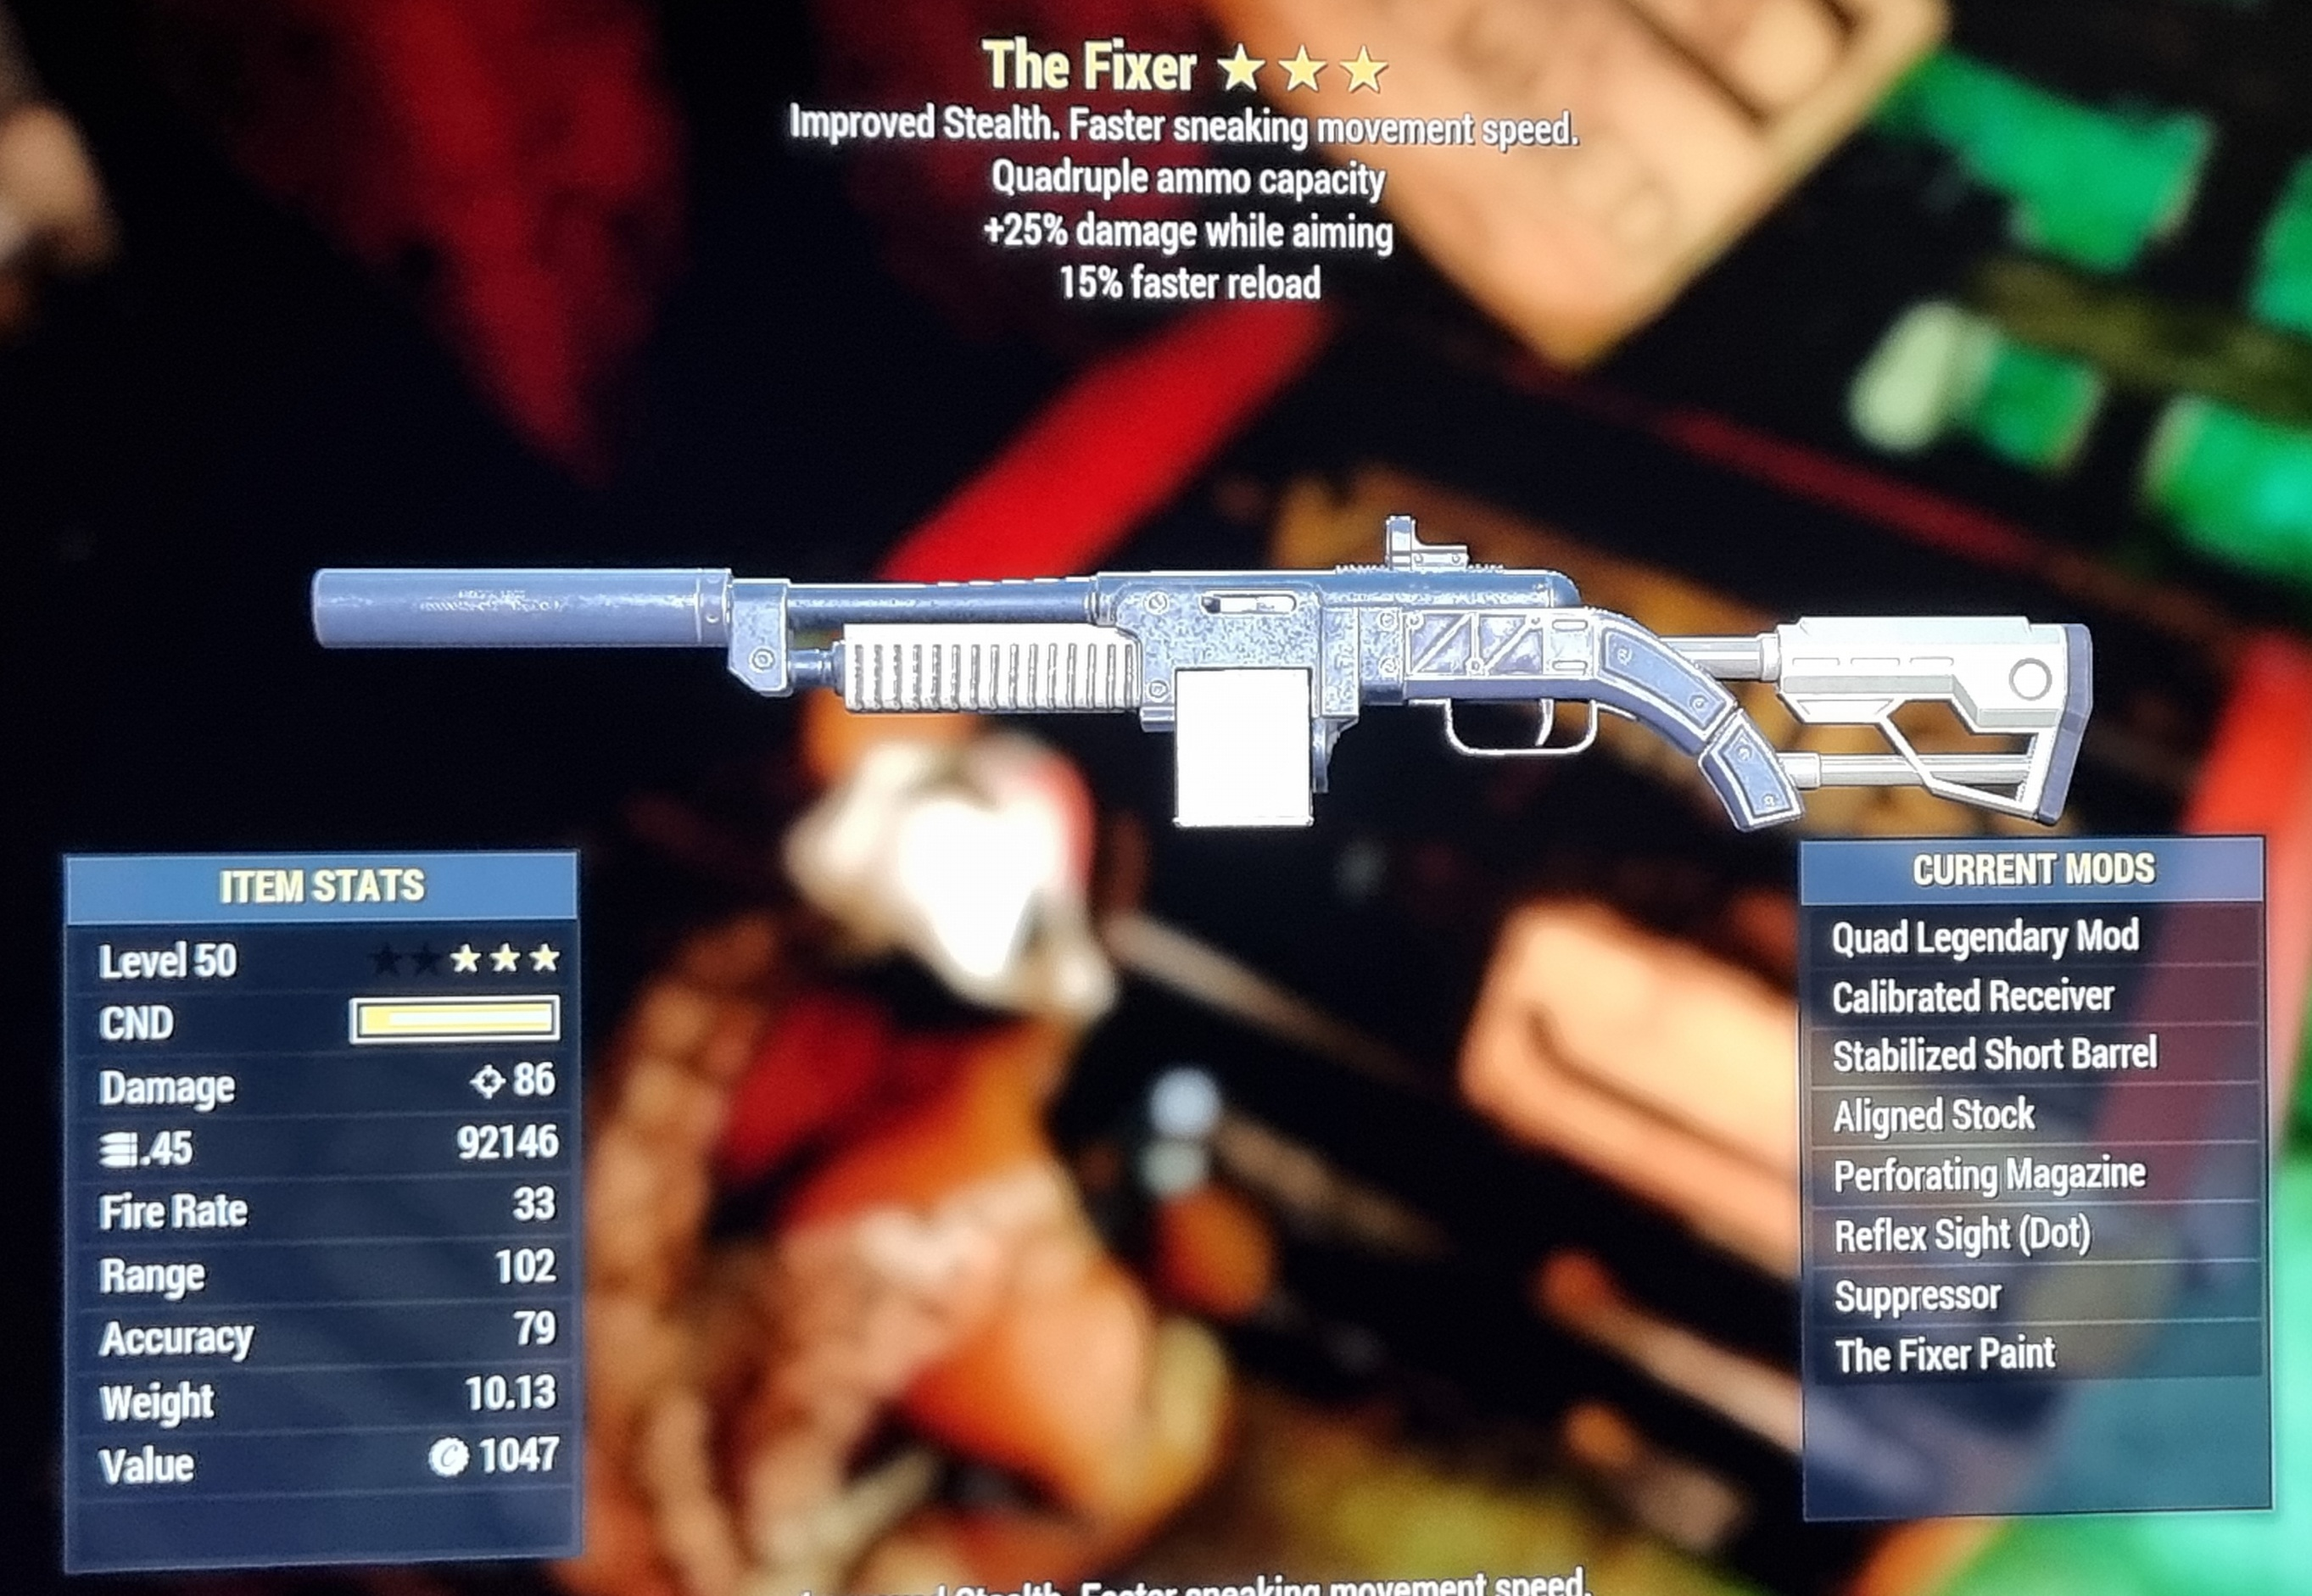 Quad +25% damage while aiming 15% faster reload FIXER FALLOUT 76 PS4